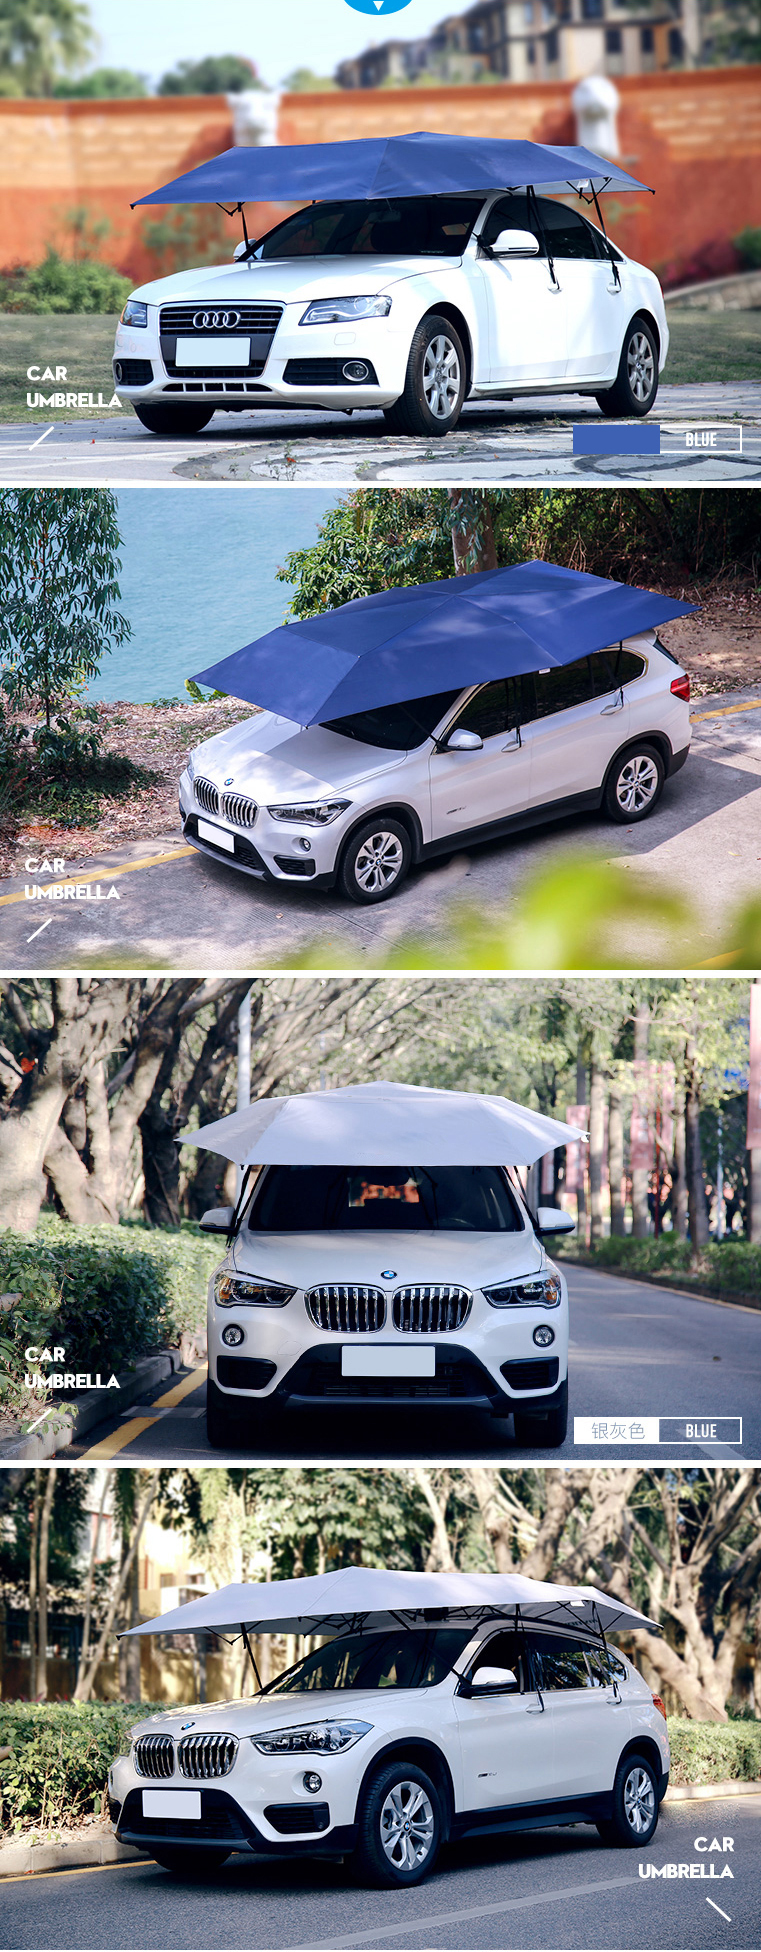 2019 hot sale car cool outdoor remout control automatic car cover sun shade car umbrella